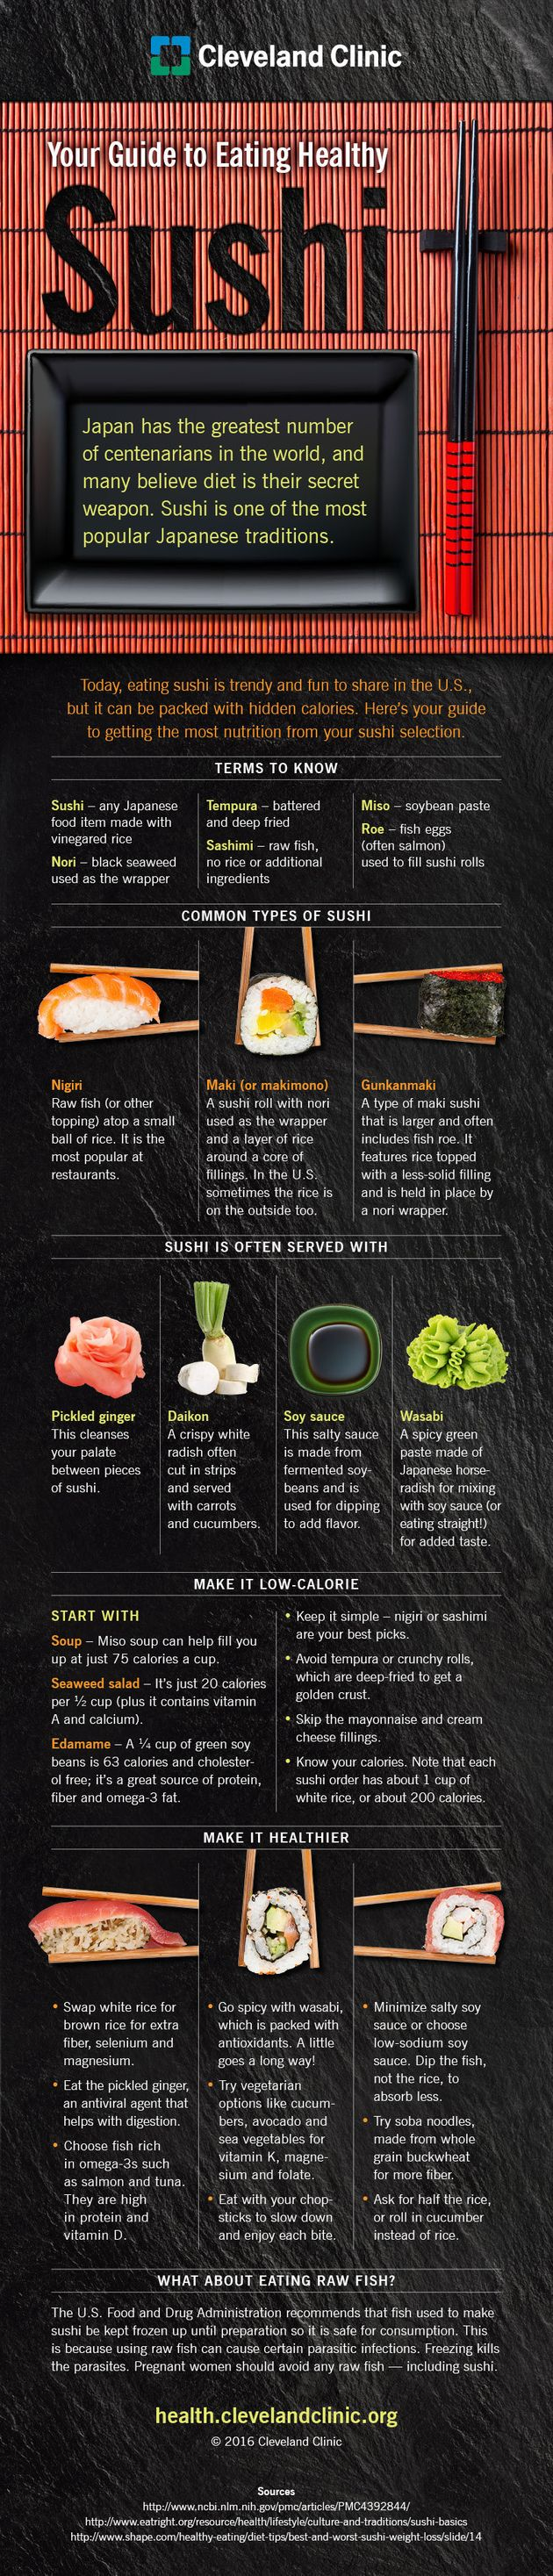 The Healthiest Way To Eat